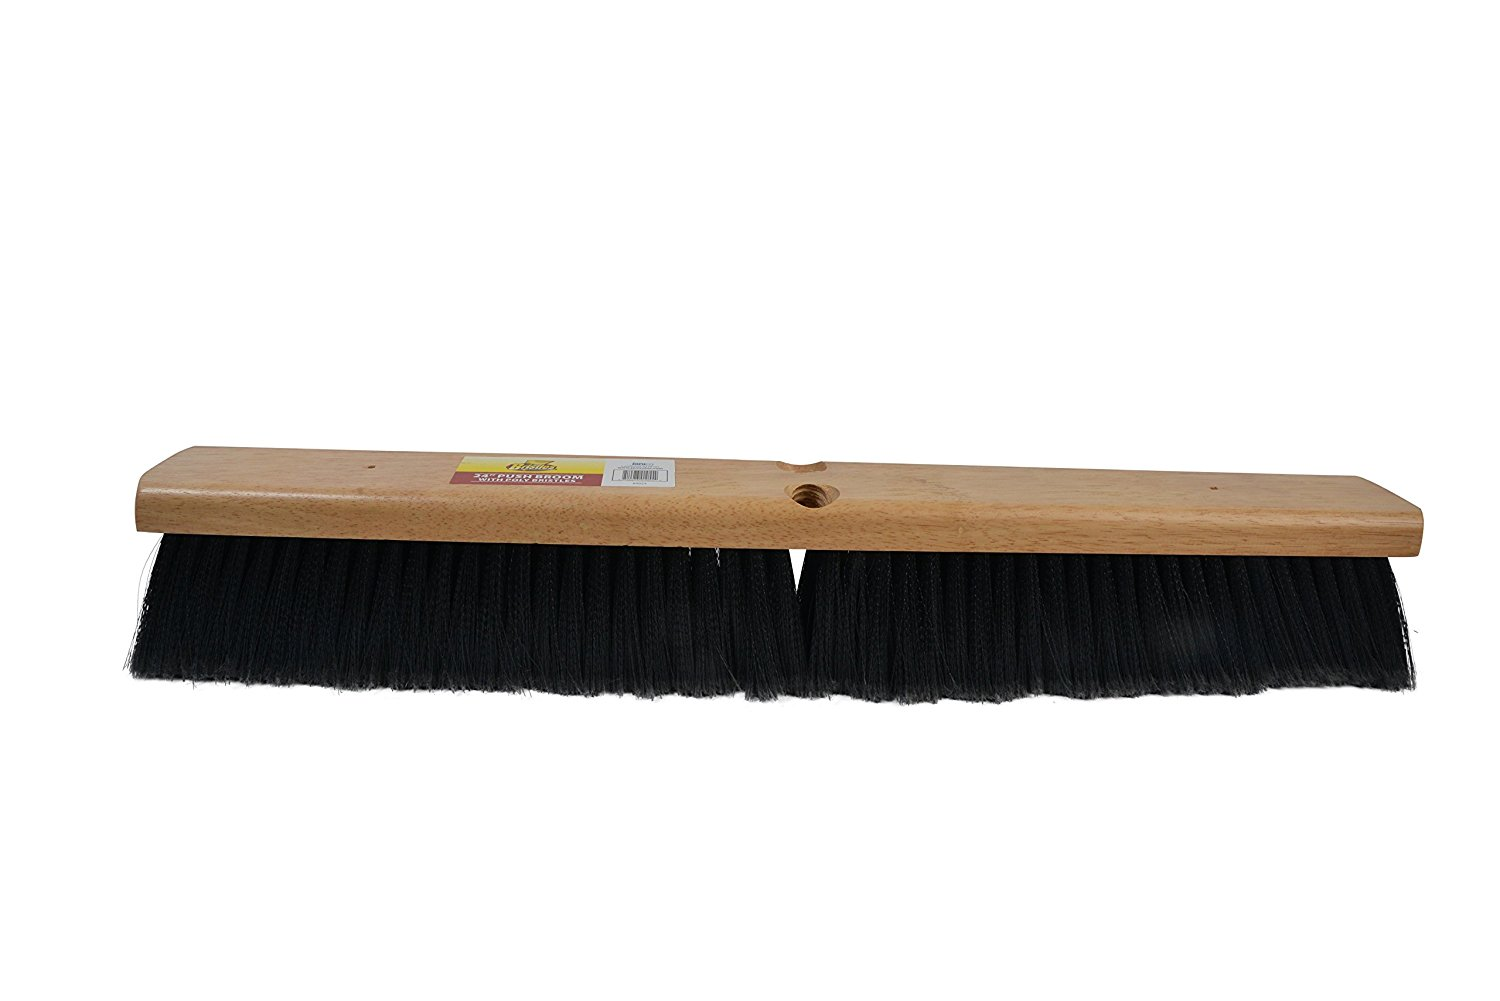 Janico 4024 Bristles 24 Inch Indoor Surface Push Broom with Polypropylene Bristles, Brown